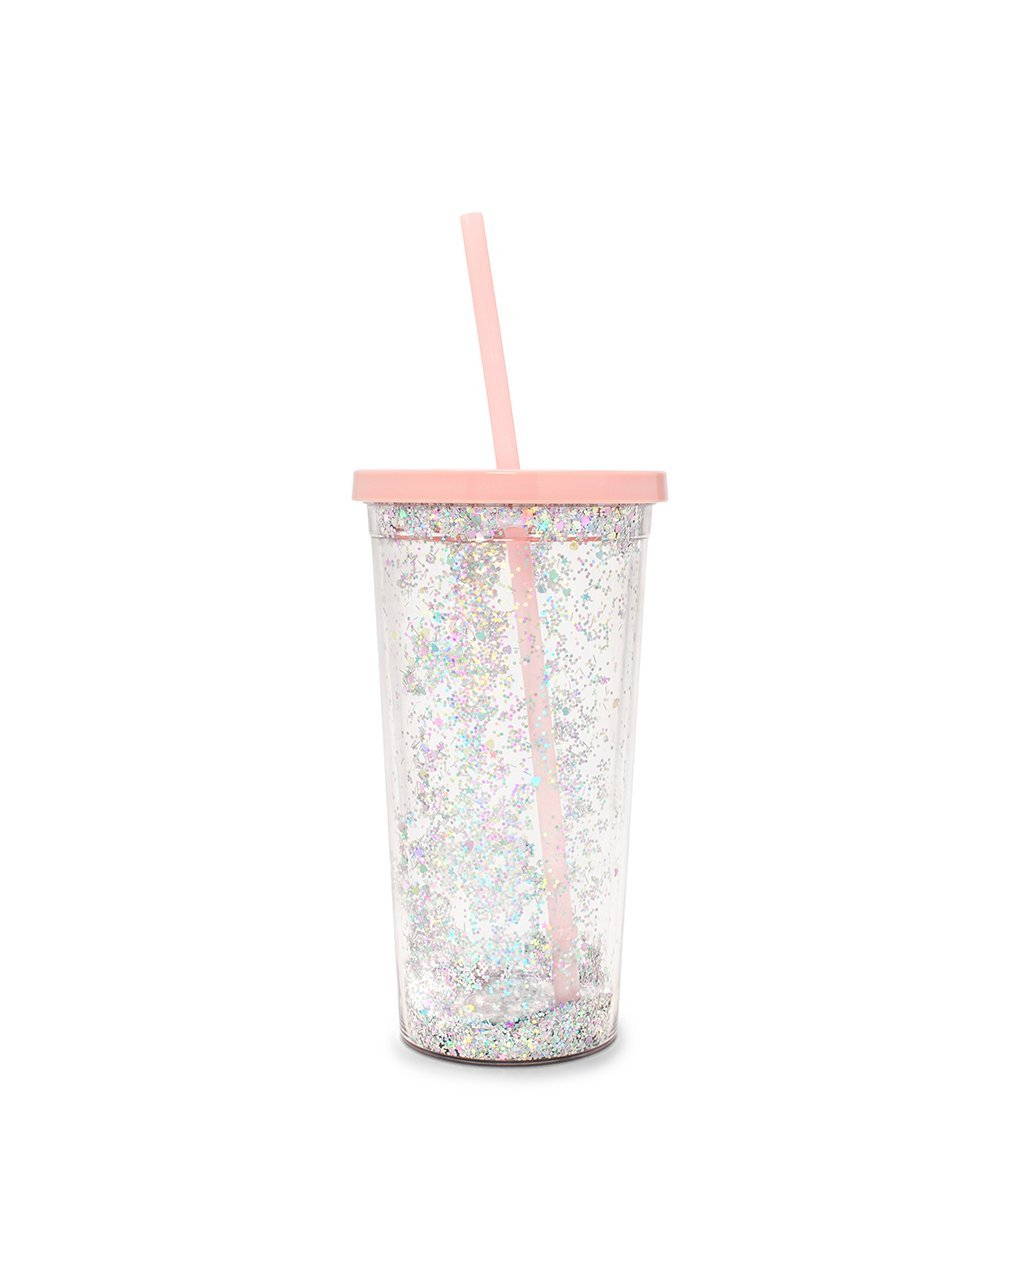 Glitter Bomb Deluxe Sip Sip Tumbler With Straw